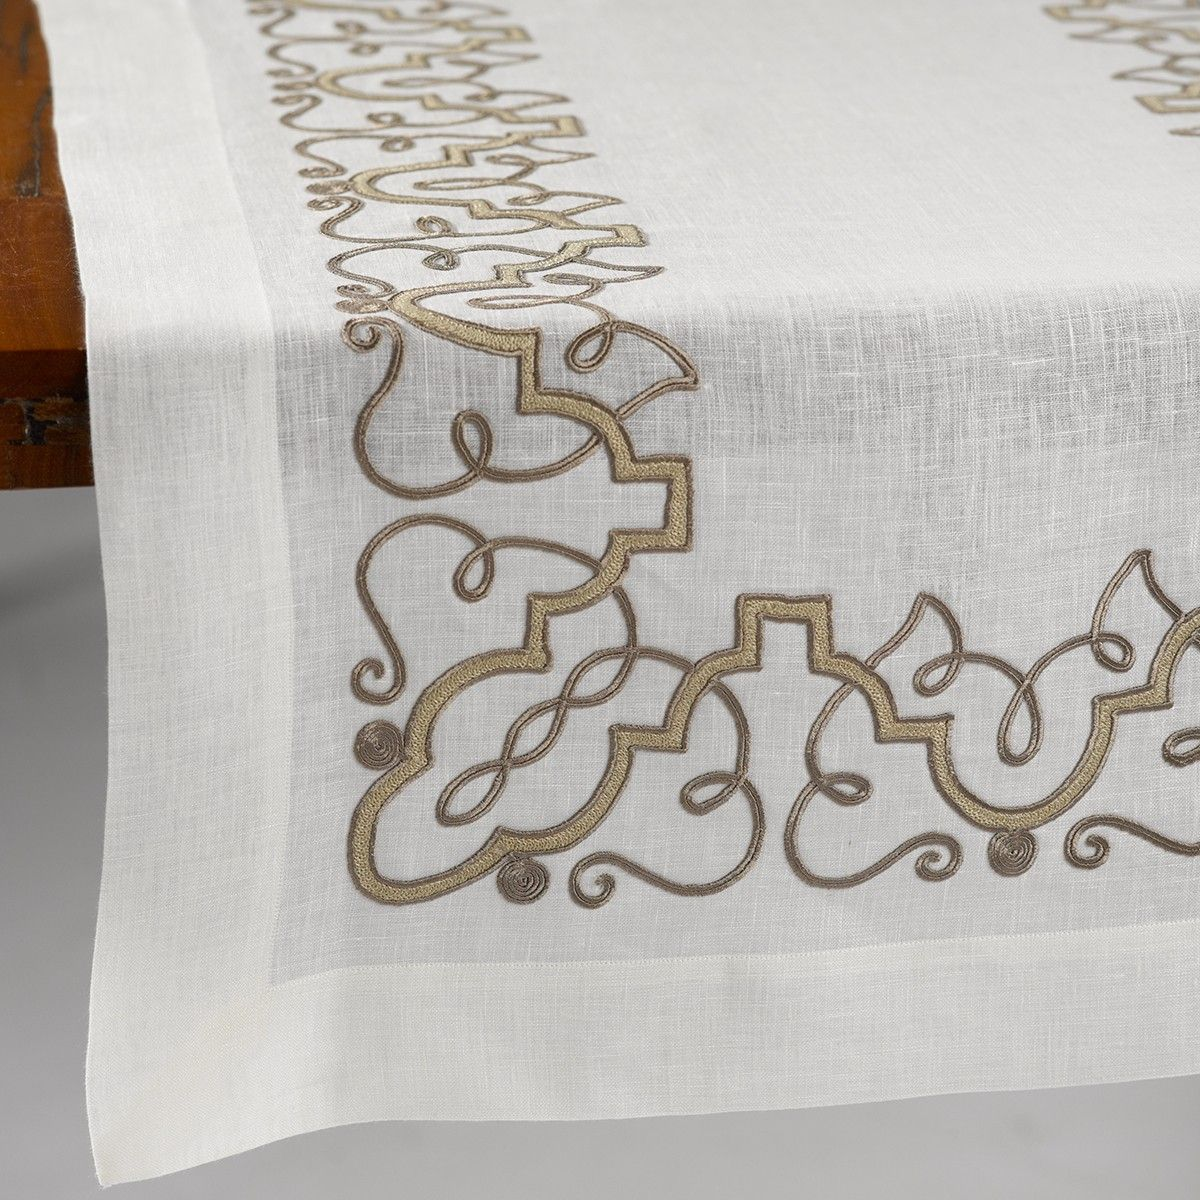 ANICHINI La Collezione Moroccan Table Linens | Artisan Handmade Napkins,  Placemats, Runners, And Tablecloths